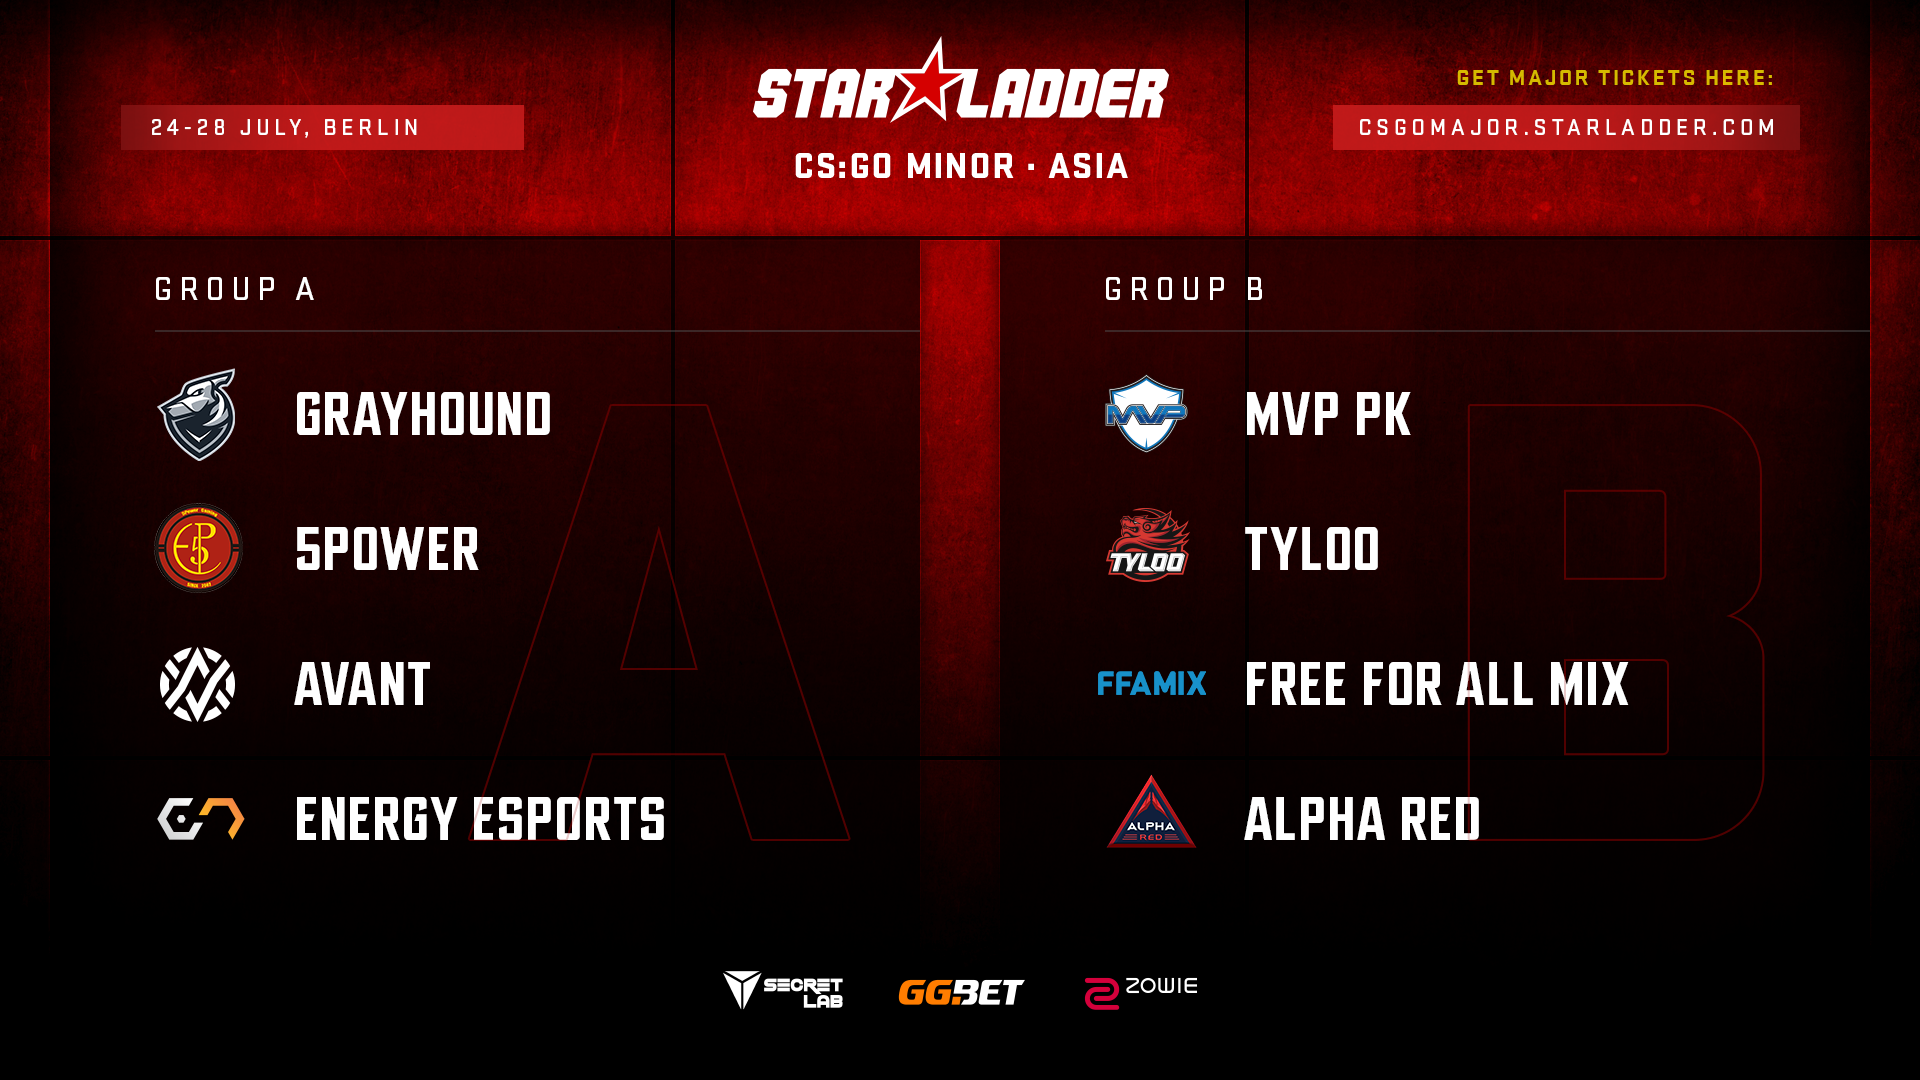 StarLadder Major Berlin 2019: Asia Minor group stage draw